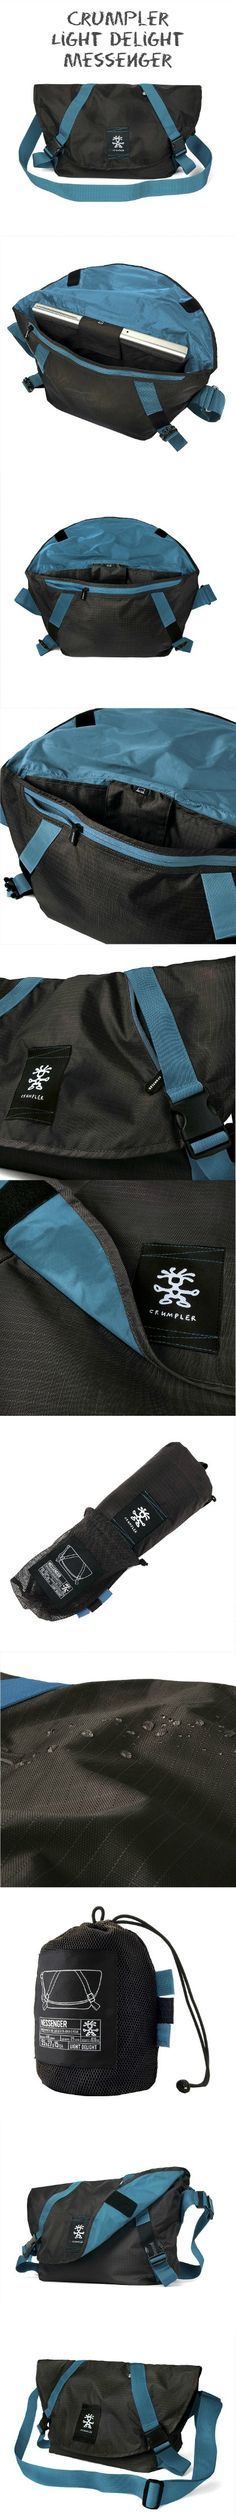 Online Shop - Crumpler - Gear for Urban Living Bike Bag, Camera Bags, Crumpets, Best Bags, Messenger Bags, Satchels, Infographics, Wallets, Clothes